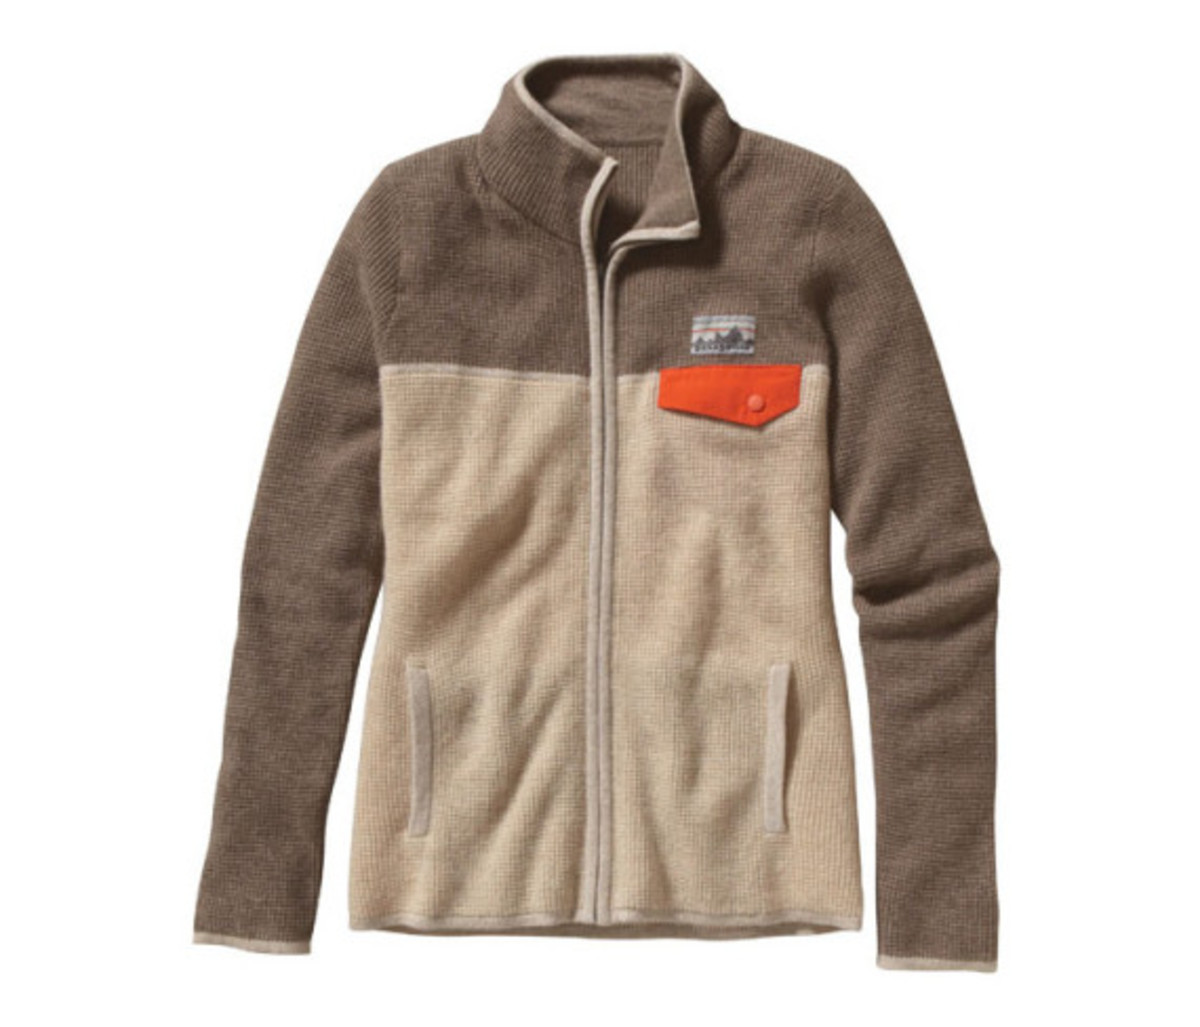 patagonia-truth-to-materials-collection-12